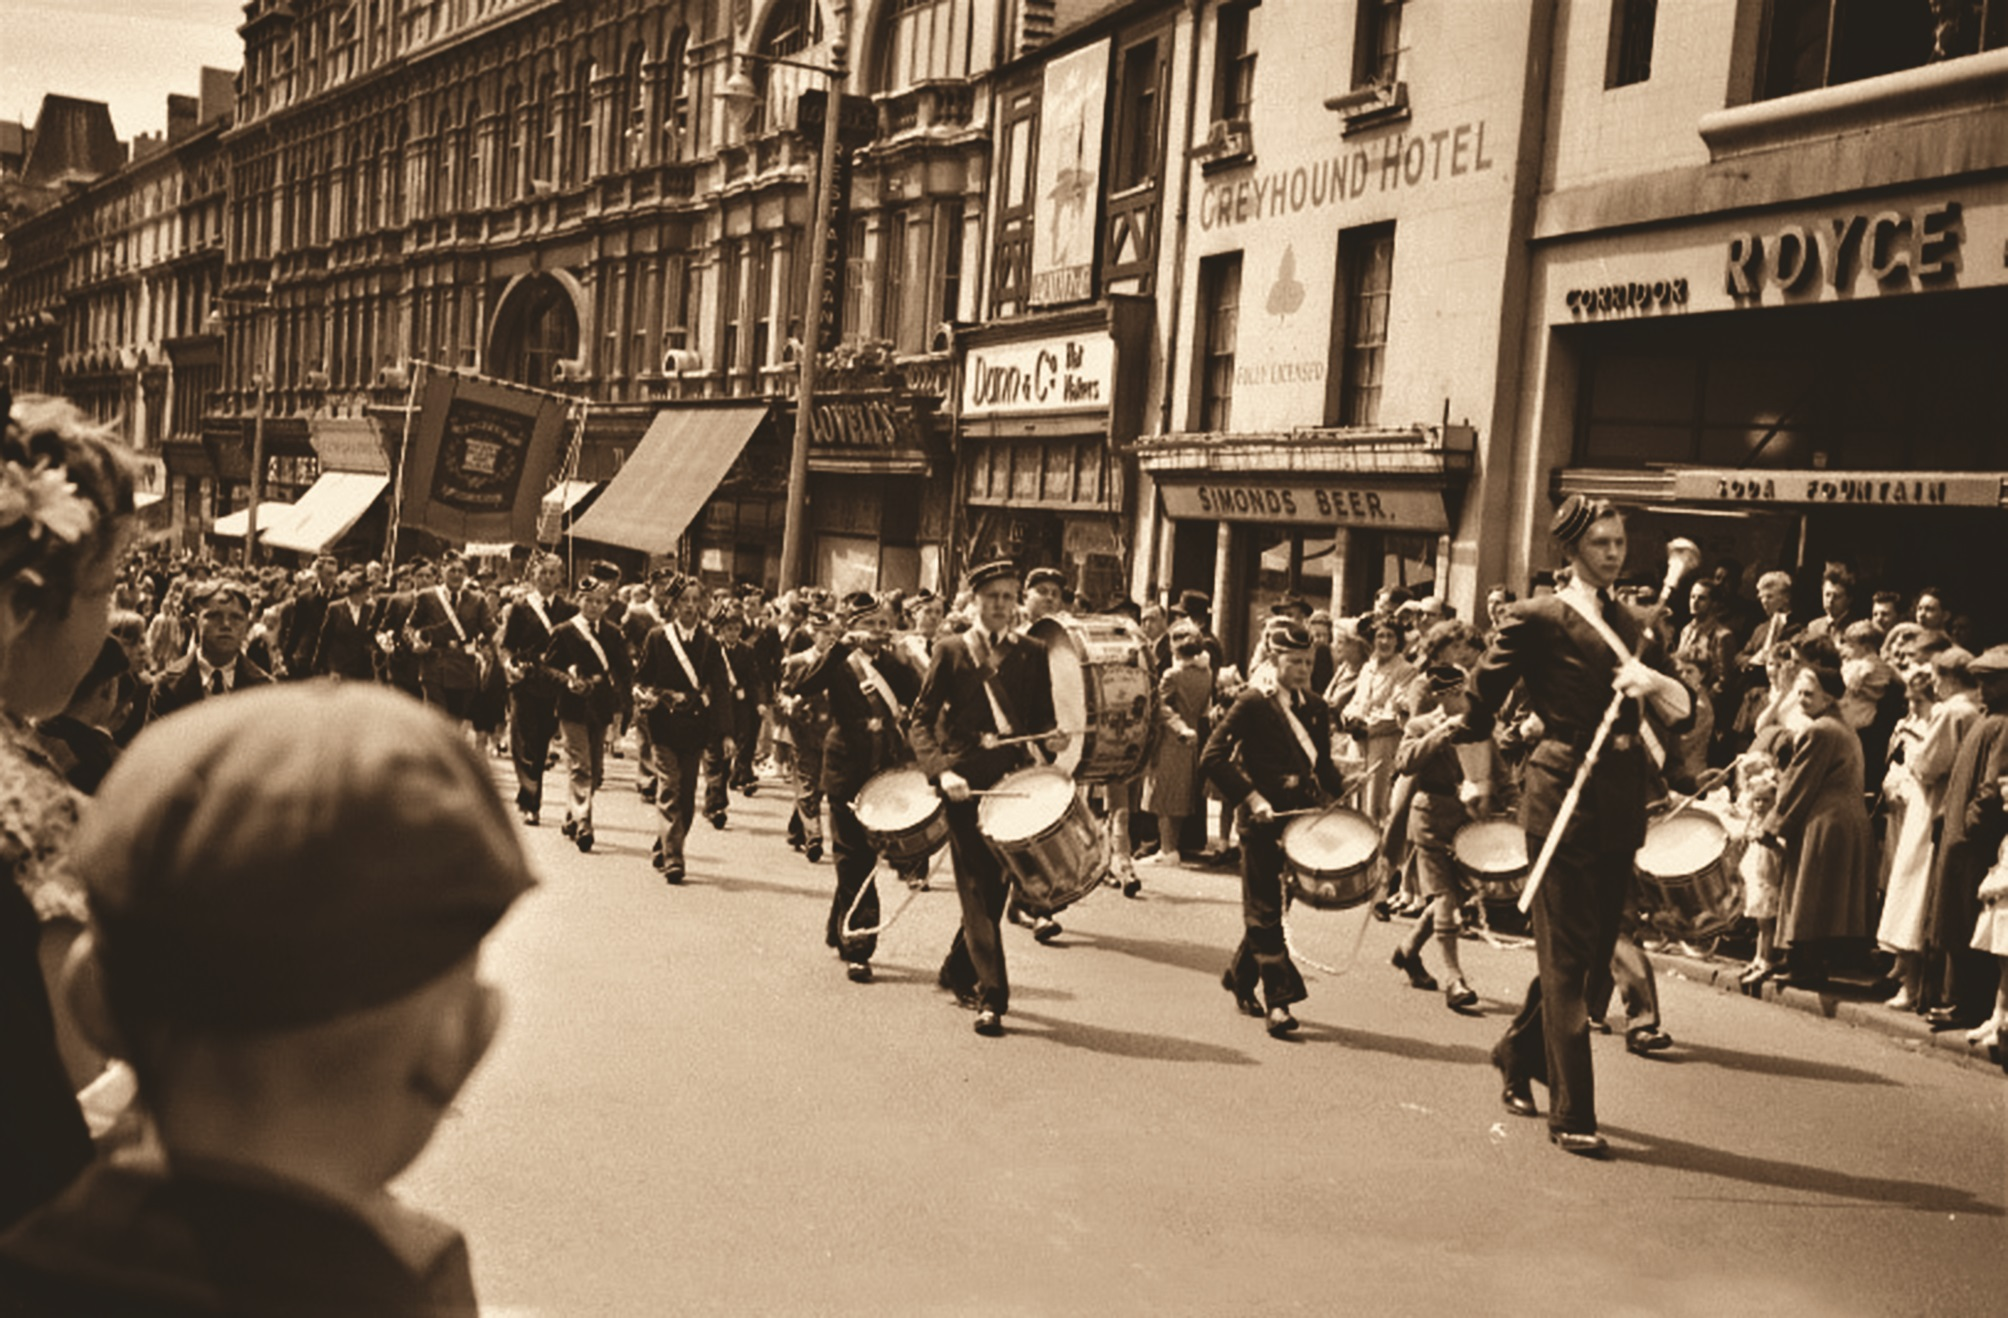 A nostalgic scene of The Boys Brigade marching along Newport's High Street as featured in Now That's What I Call Newport, published by Amberley.